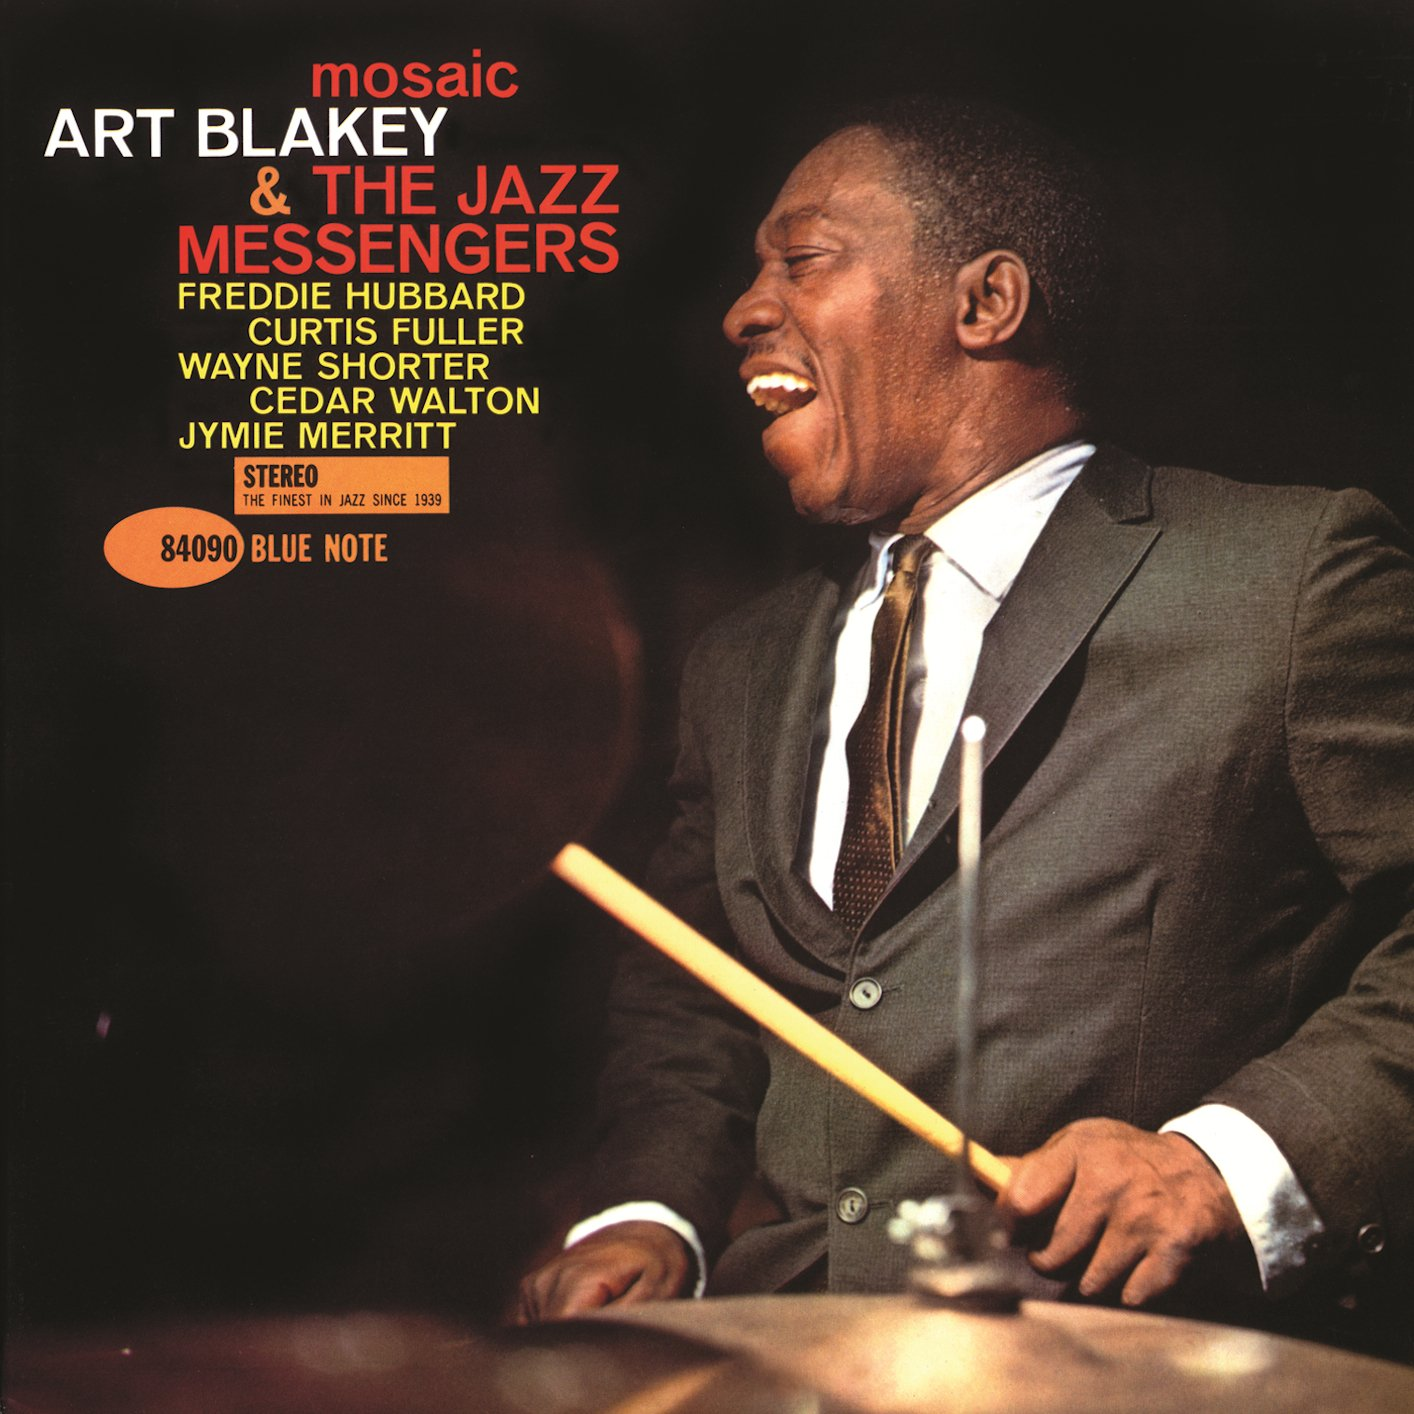 Art Blakey & the Jazz Messengers - Mosaic (4576183746647)